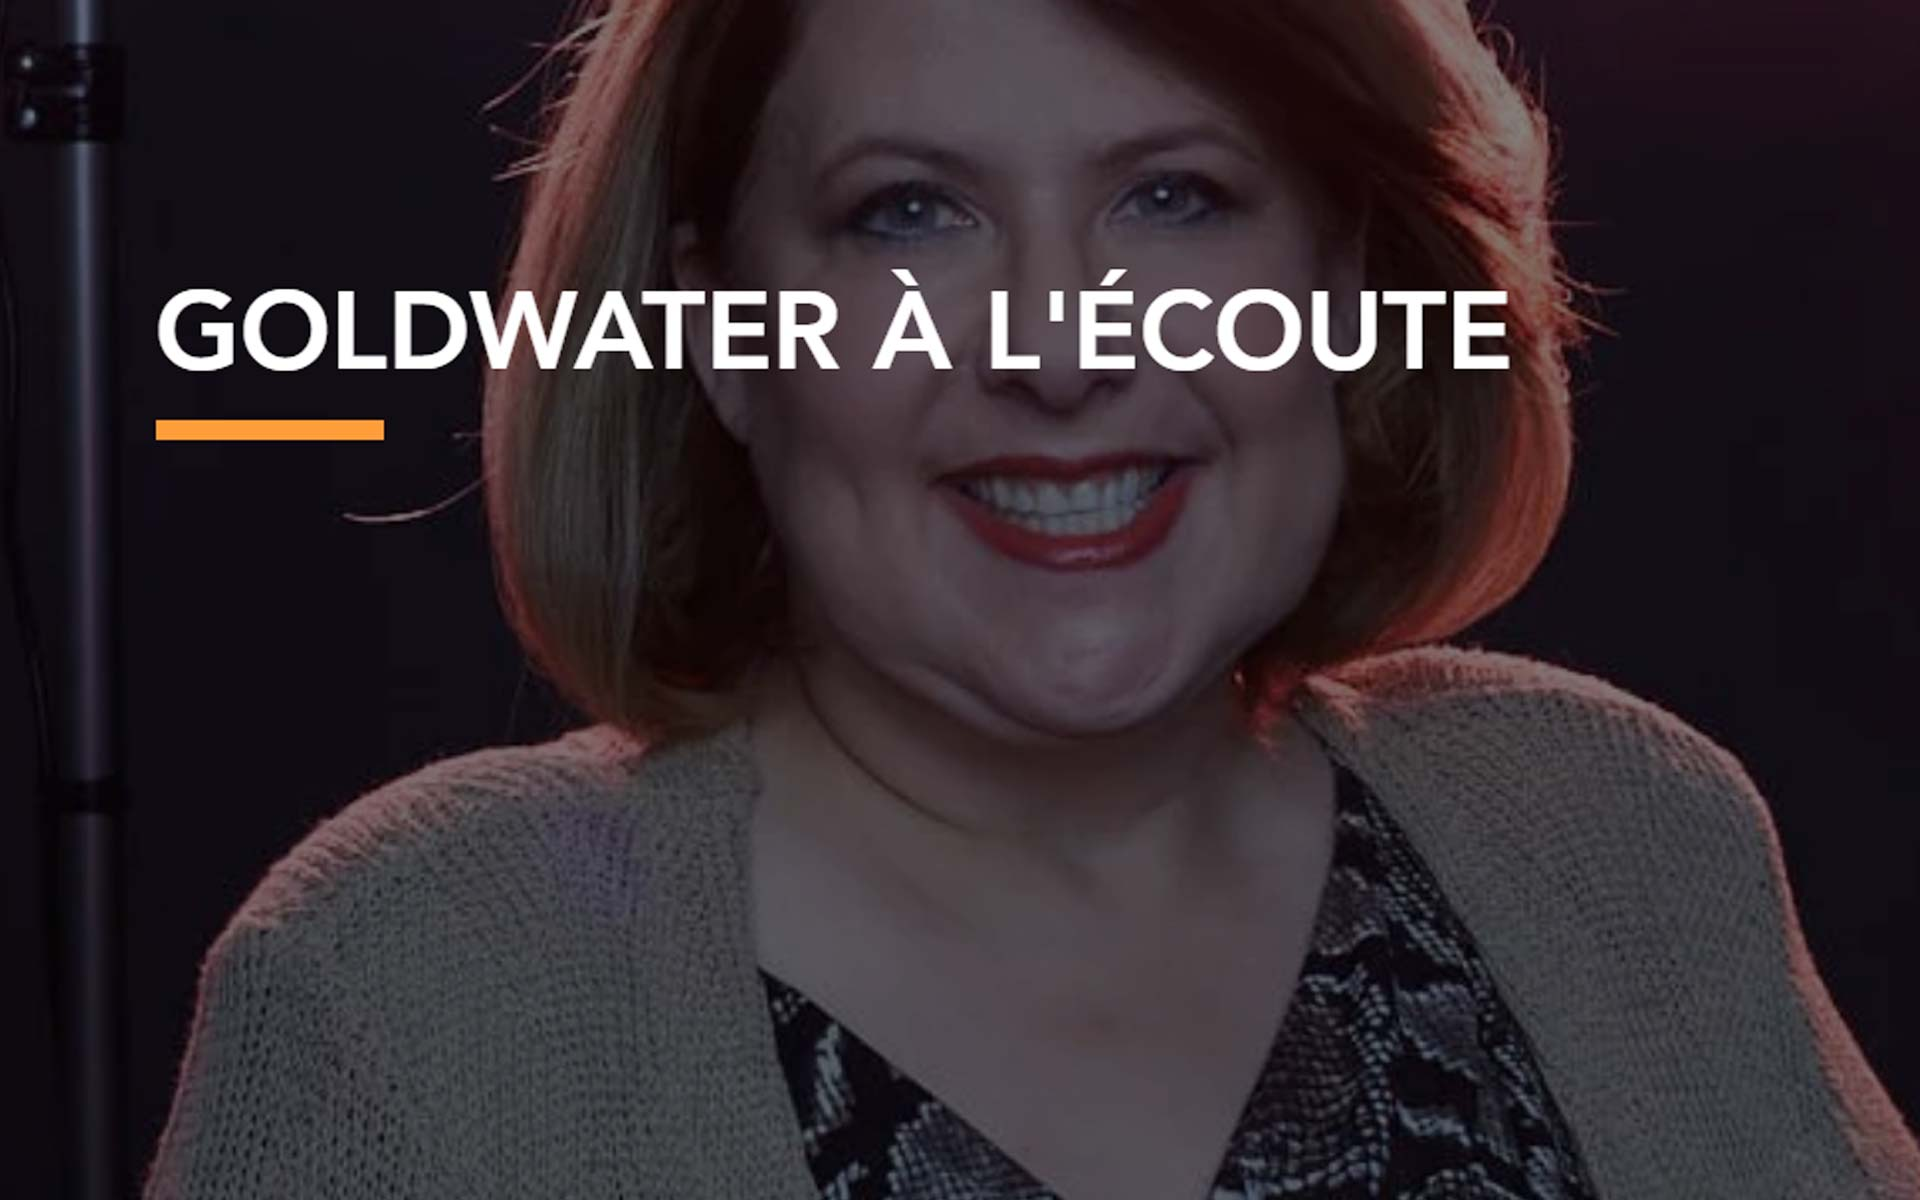 Media-Ranch_Goldwater-a-lecoute